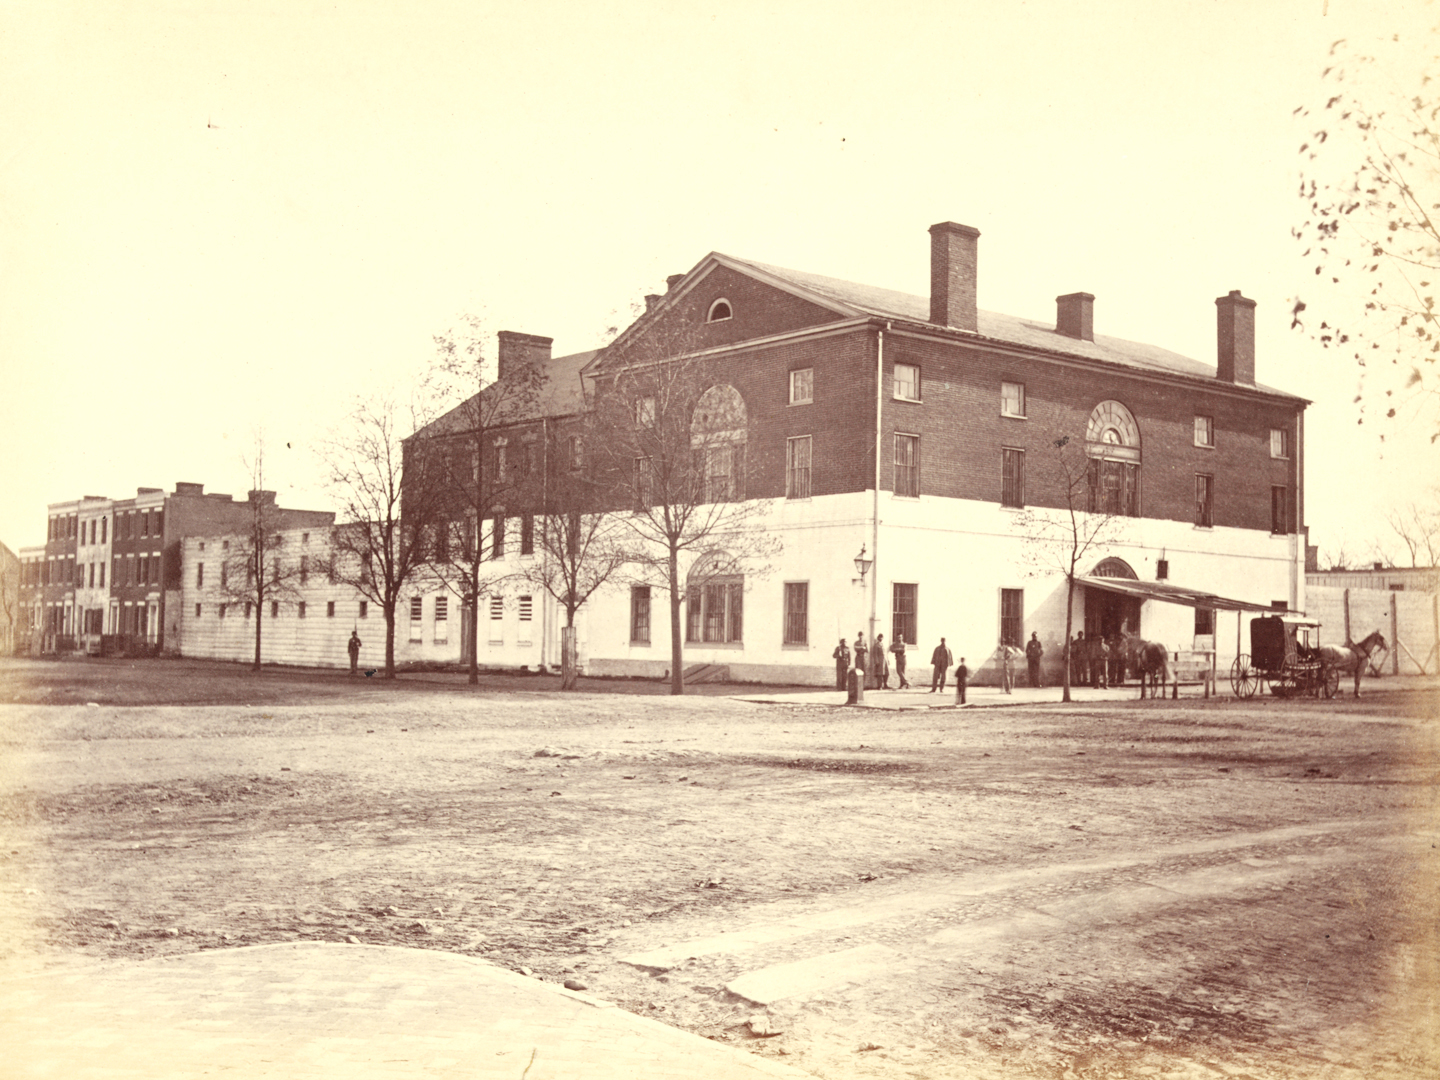 Sepia-toned photograph of three-story brick building with gabled roof and chimneys. Bottom half of building painted white, rest of building dark brick. Awning at front entrance, with people standing around front door.